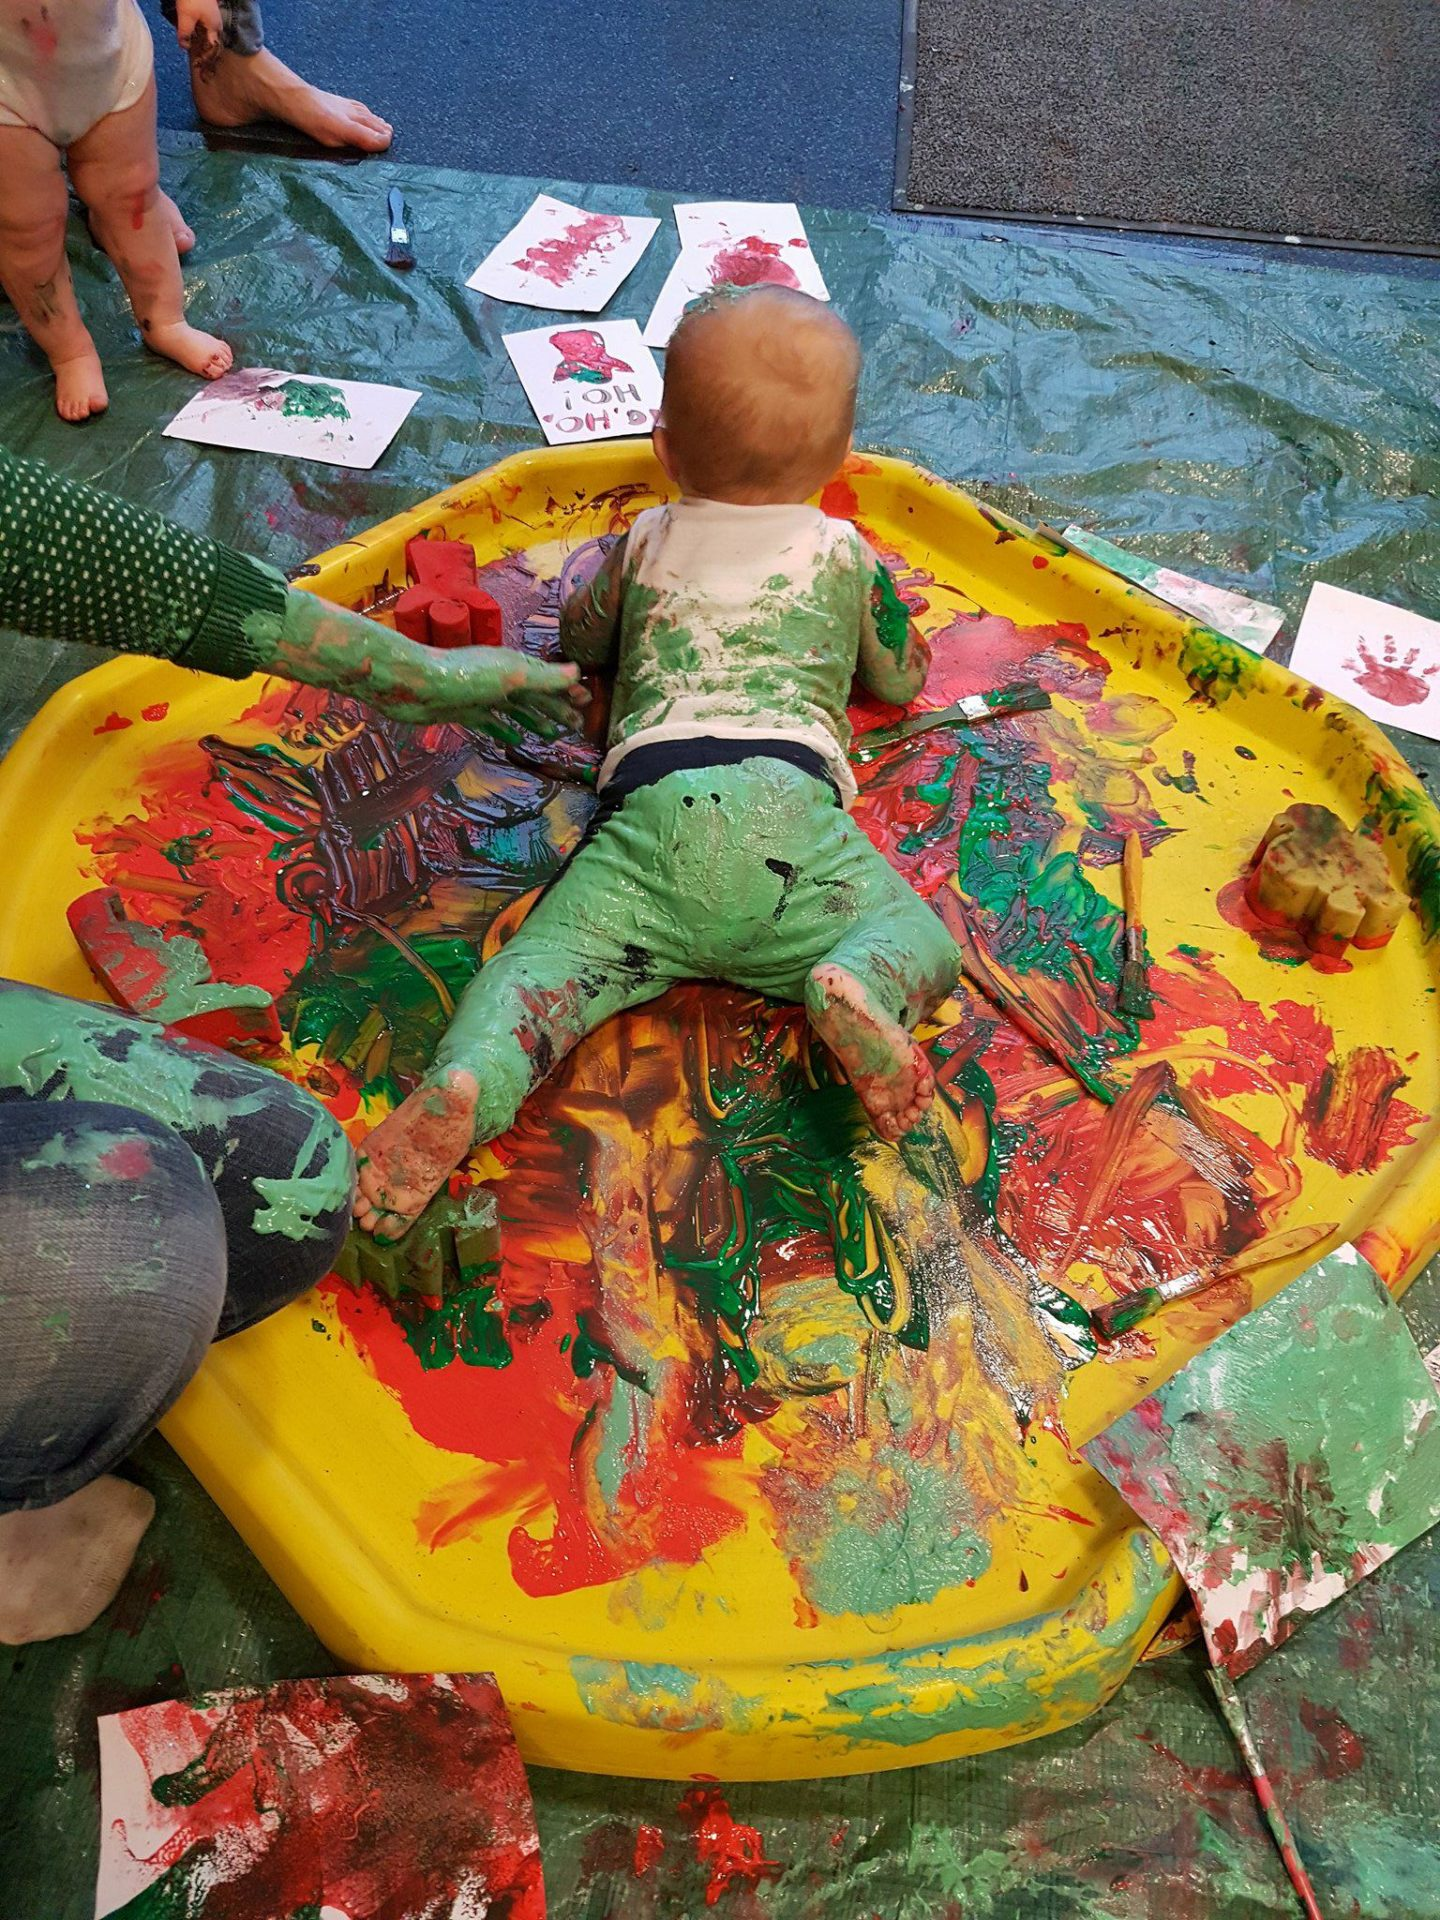 Messiest messy play ever